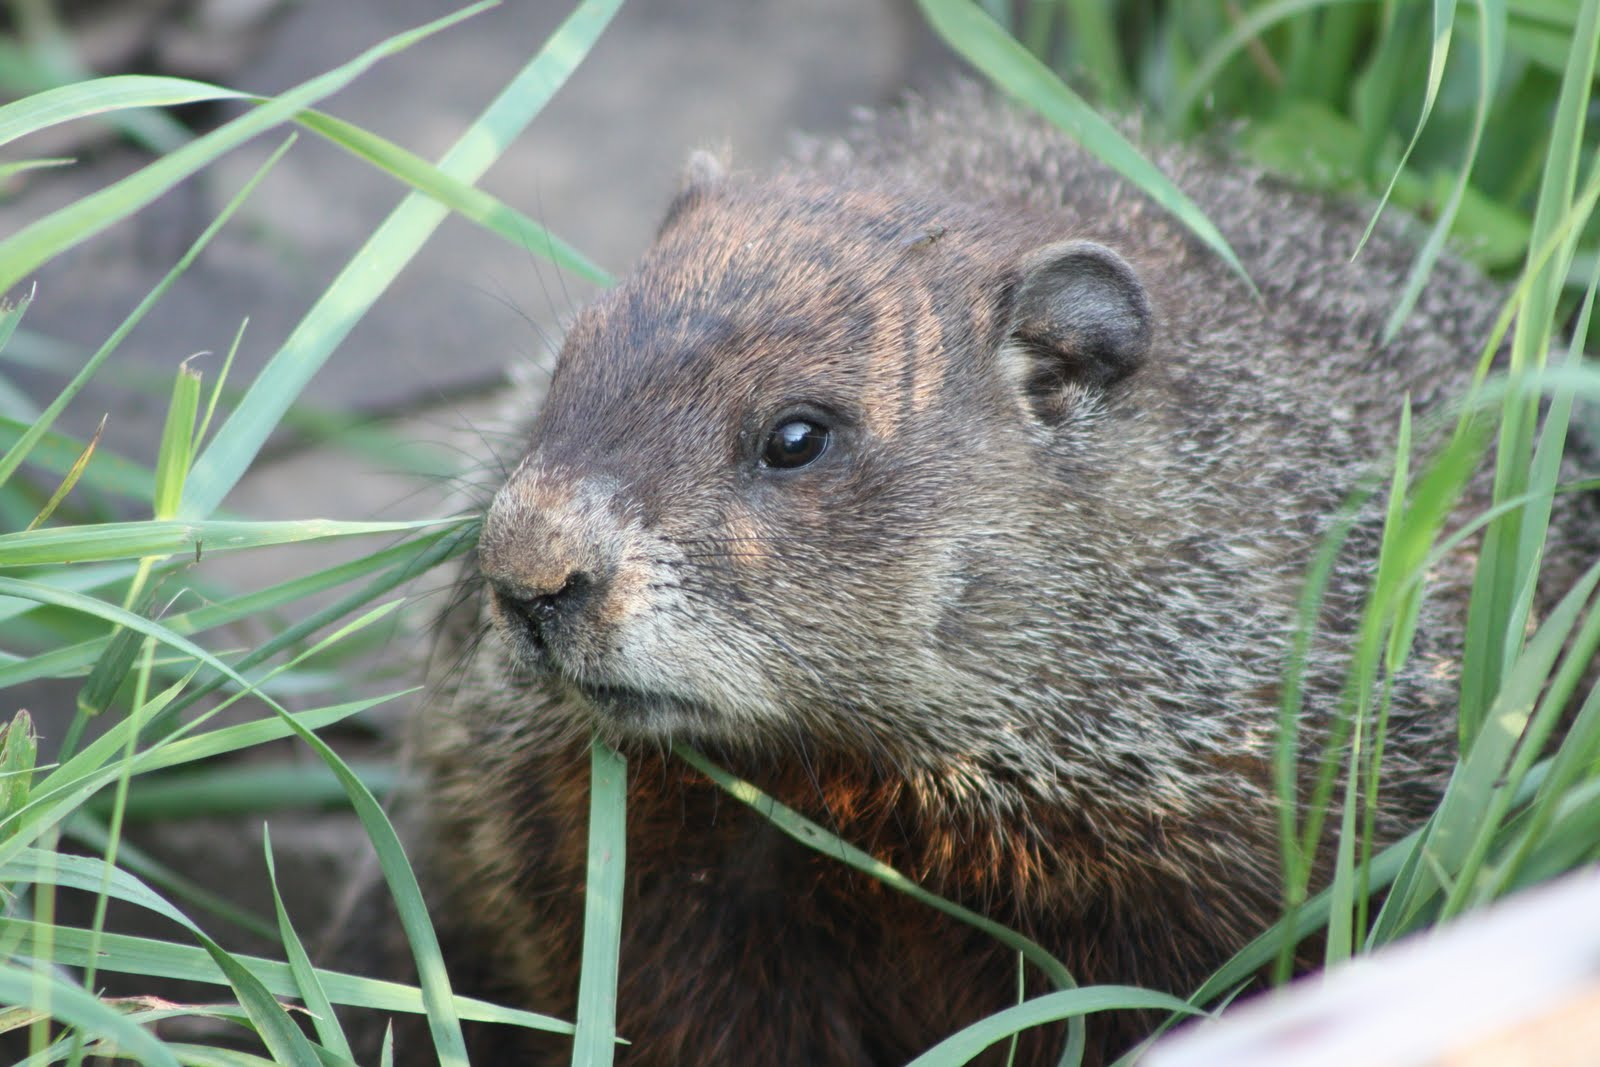 Thimbles, Bobbins, Paper And Ink: The Garden And The Groundhog